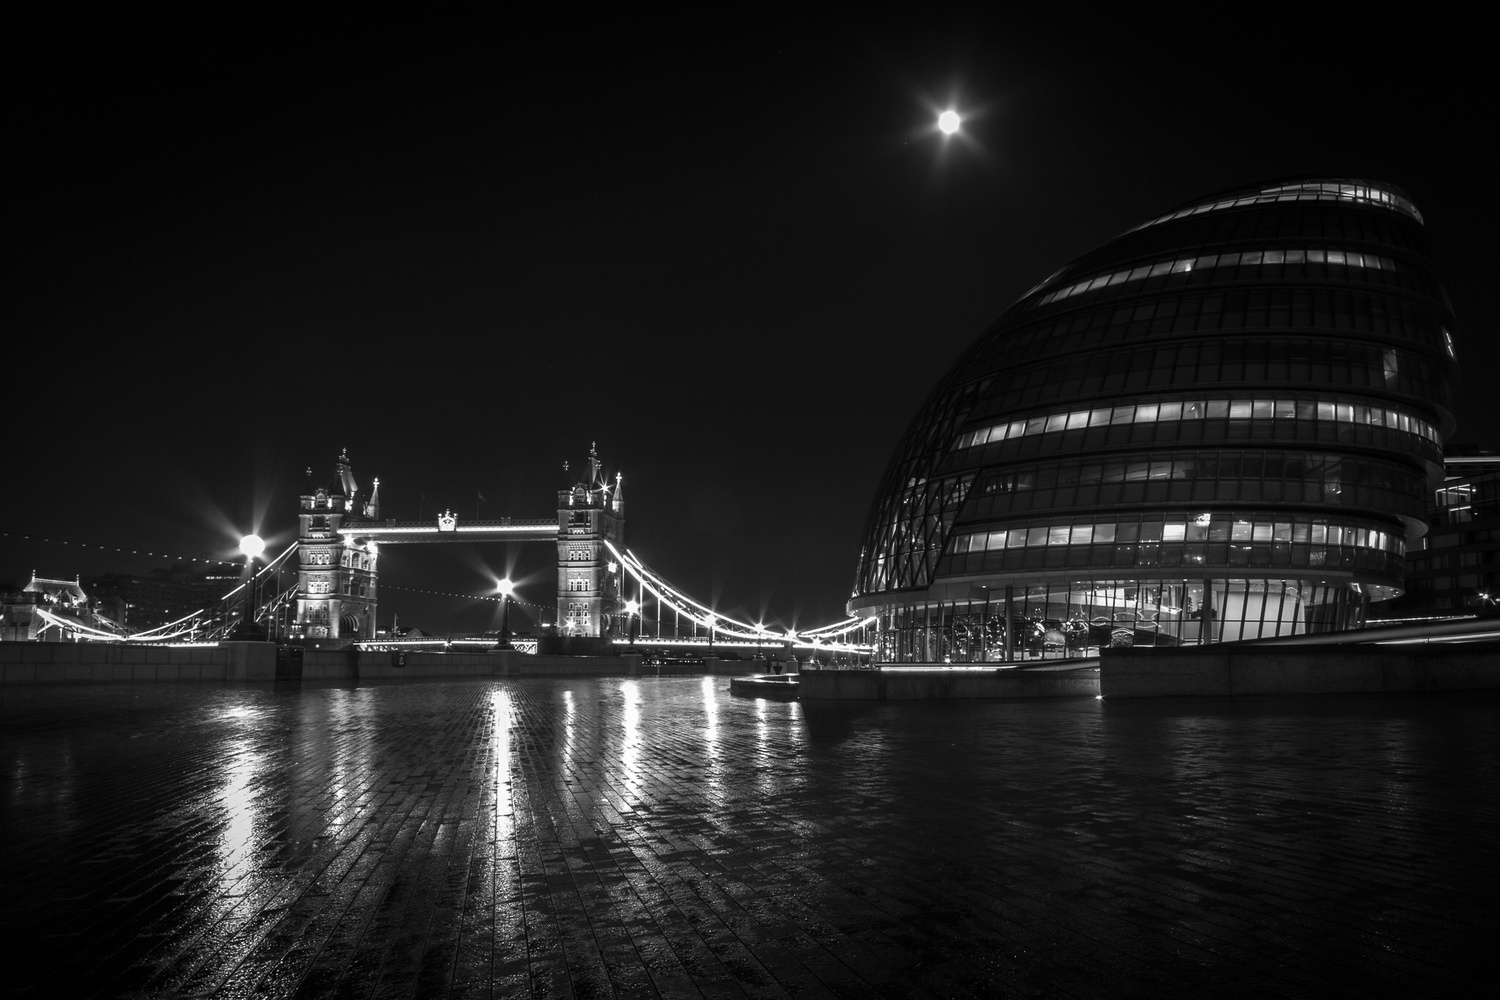 City Hall Reflections by Sam Hood